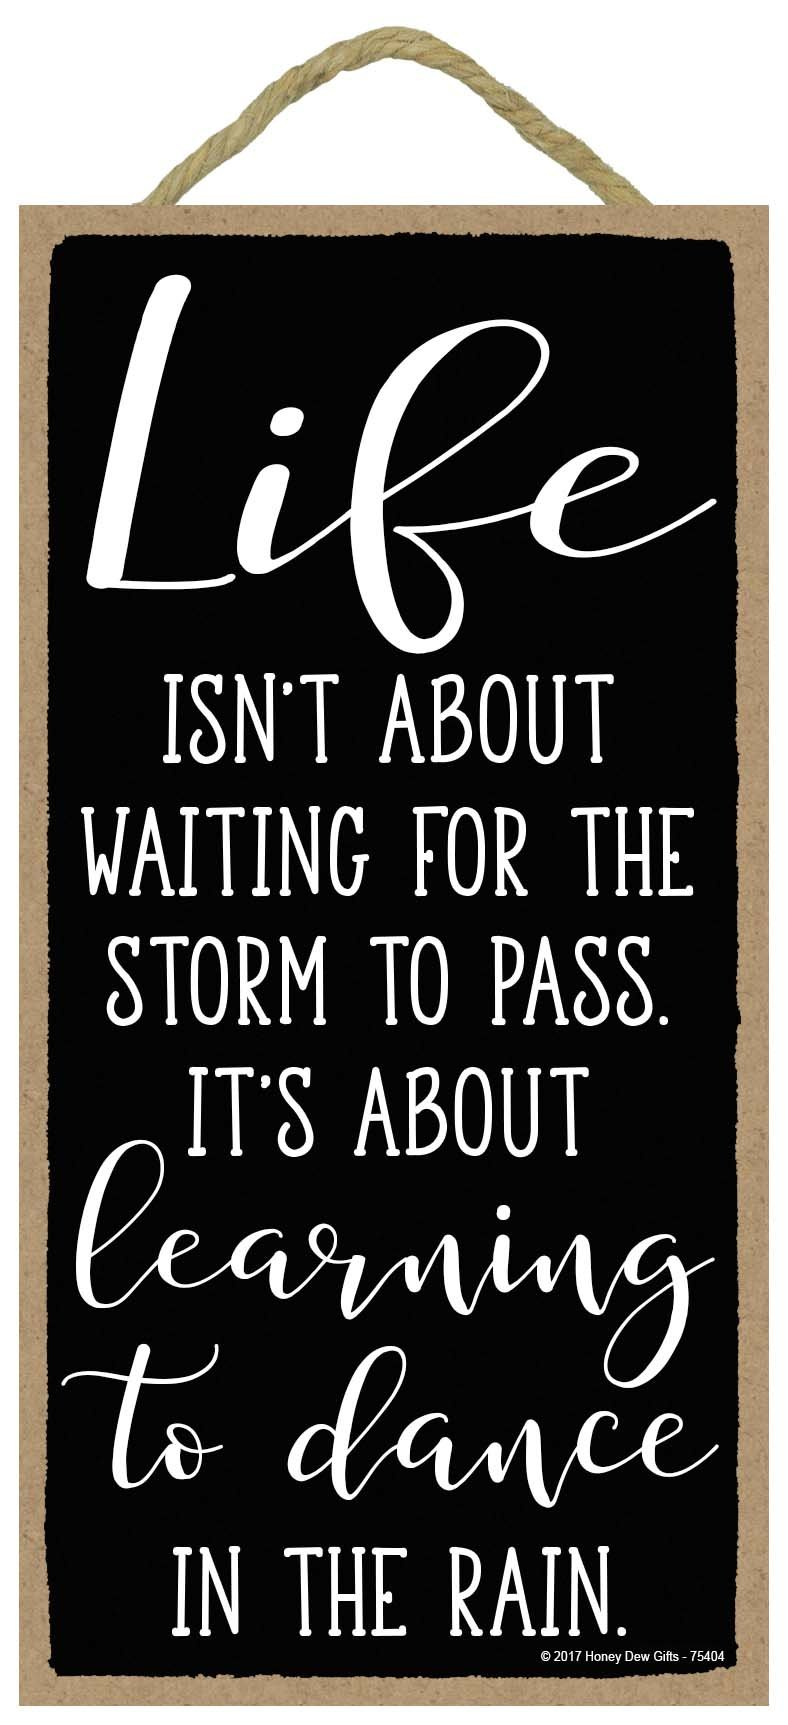 Honey Dew Gifts Wall Hanging Decorative Wood Sign - Life Isn't About Waiting for The Storm to Pass. It's About Learning to Dance in The Rain 5x10 Hang in The Wall Home Decor by Honey Dew Gifts